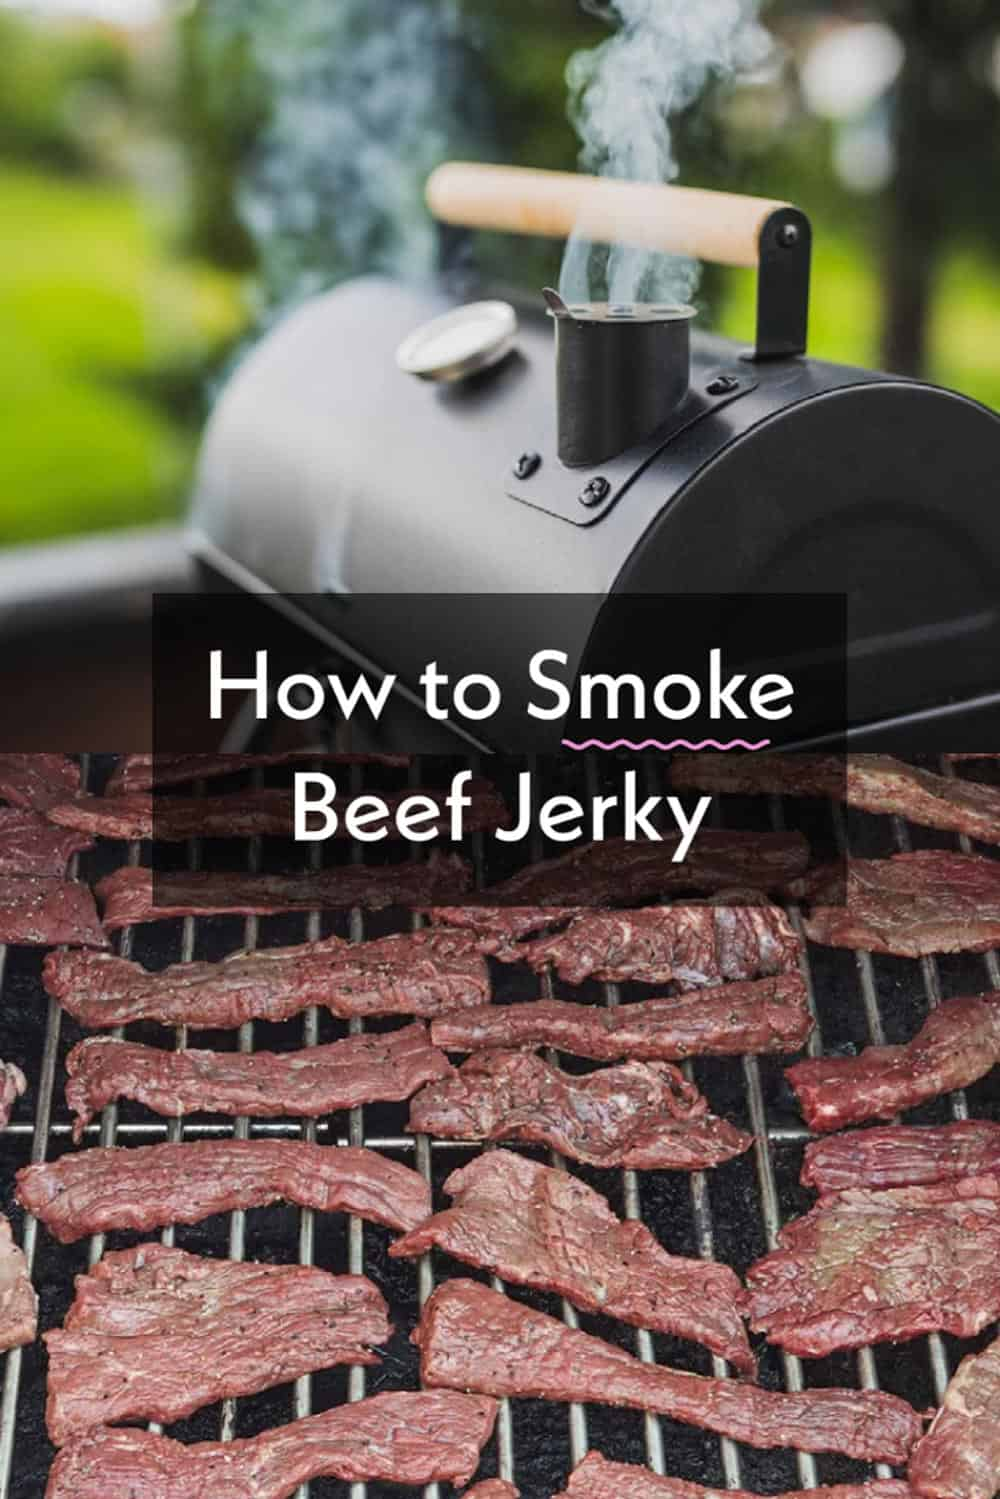 How to Make Beef Jerky in a Smoker